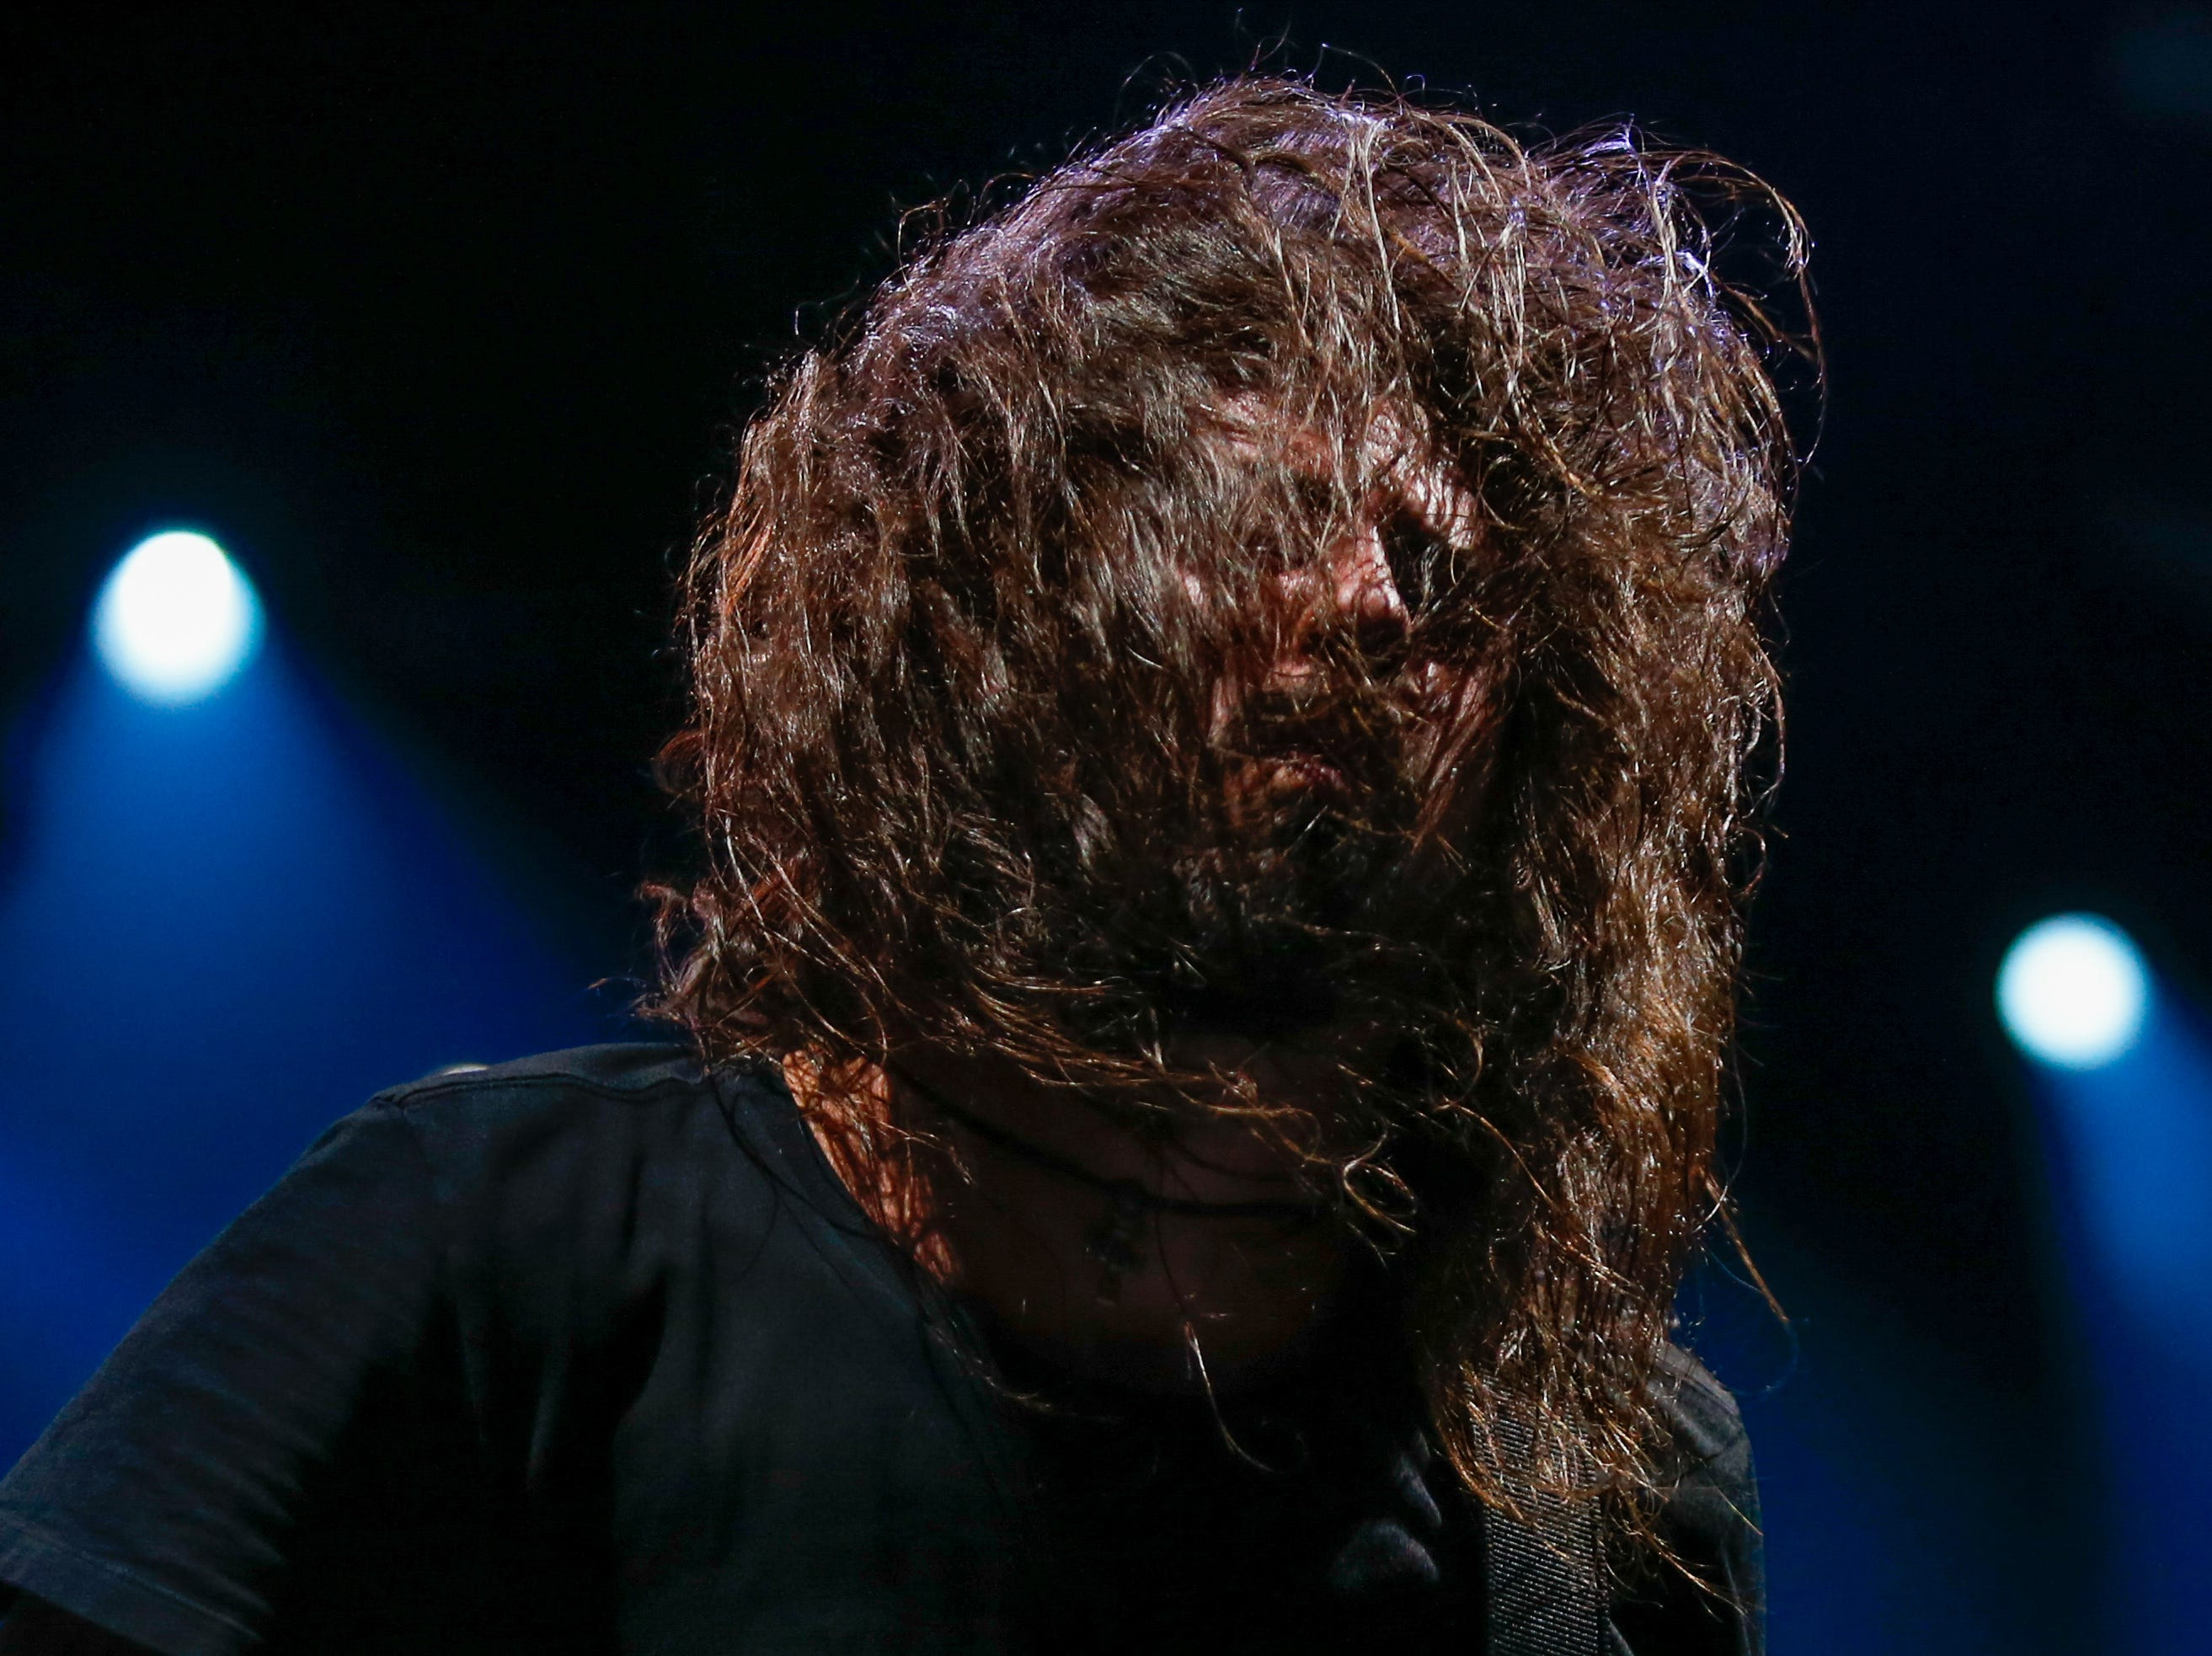 Yet another shot of Dave Grohl looking like a yeti as he flips his hair during the Foo Fighters' performance at Little Caesars Arena Monday.